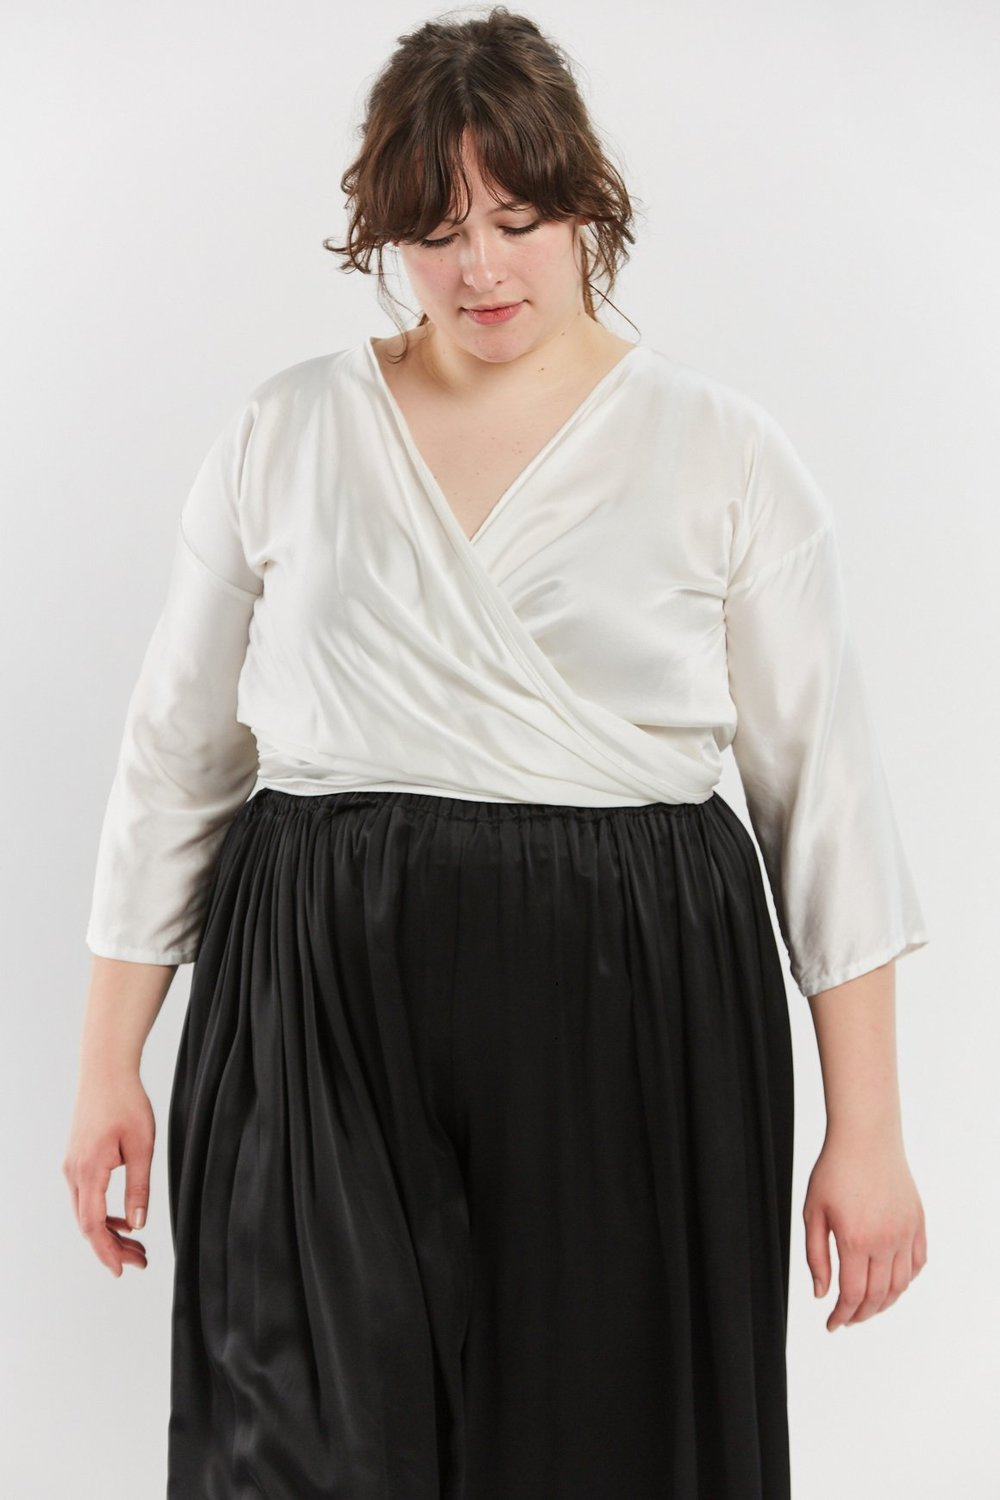 91c379fb2e2d 15 Ethical Brands with Plus Size collections. — Wonder Wardrobe